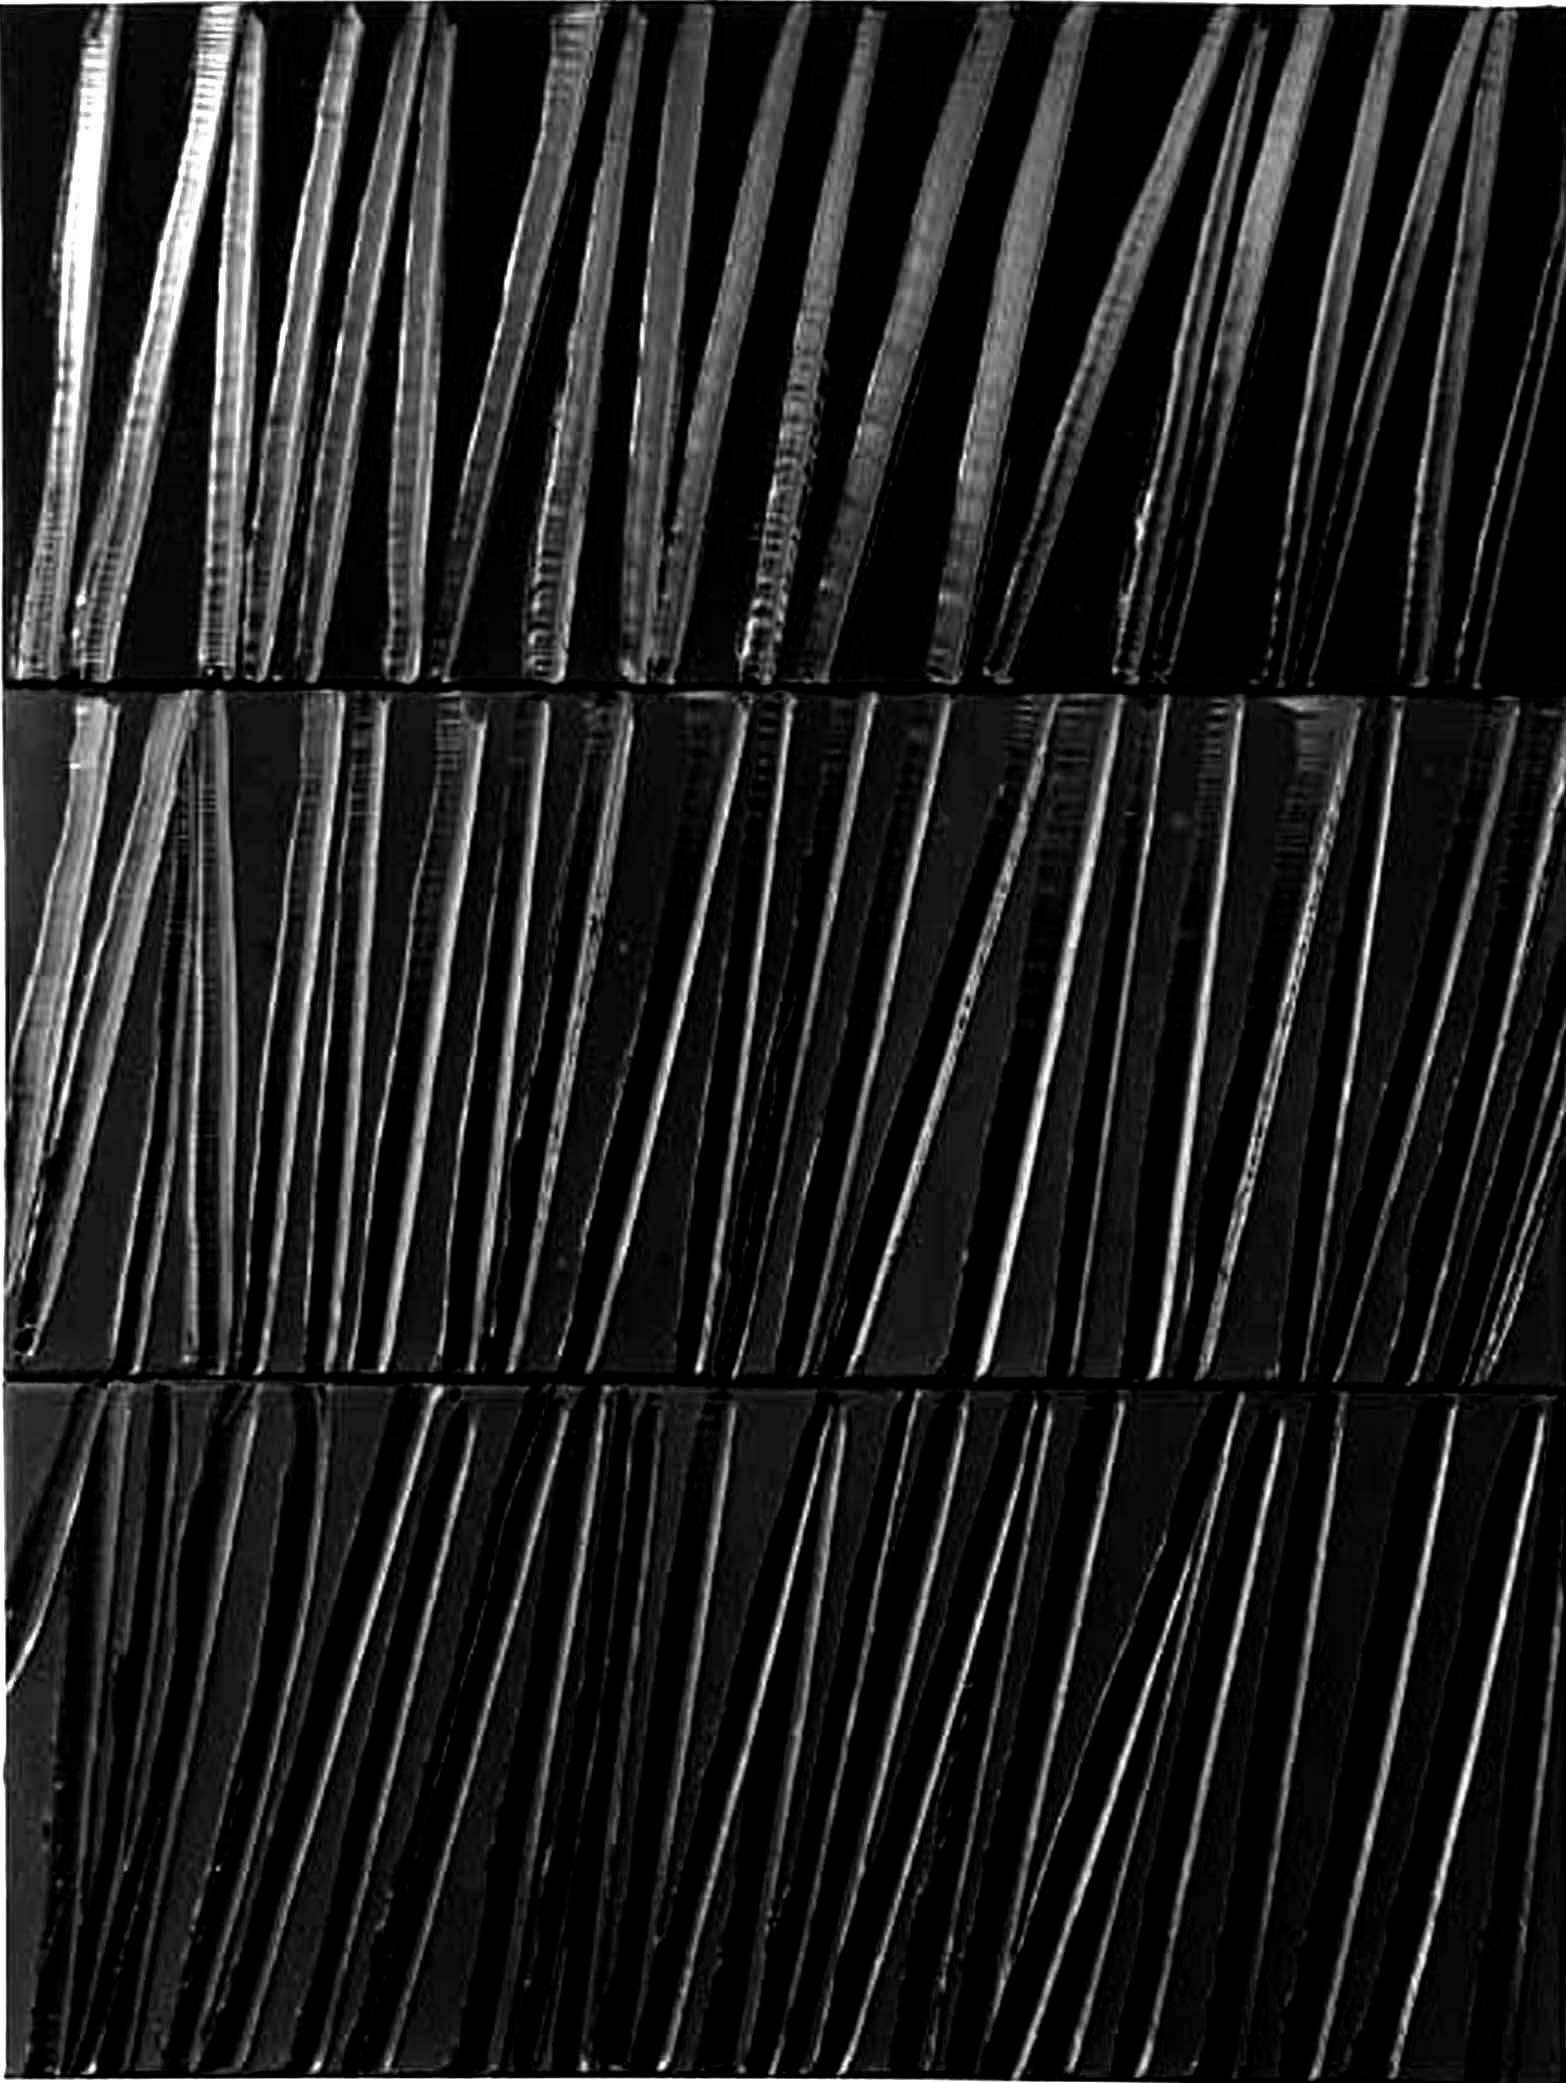 Pierre Soulages, courtesy galerie Alice Pauli